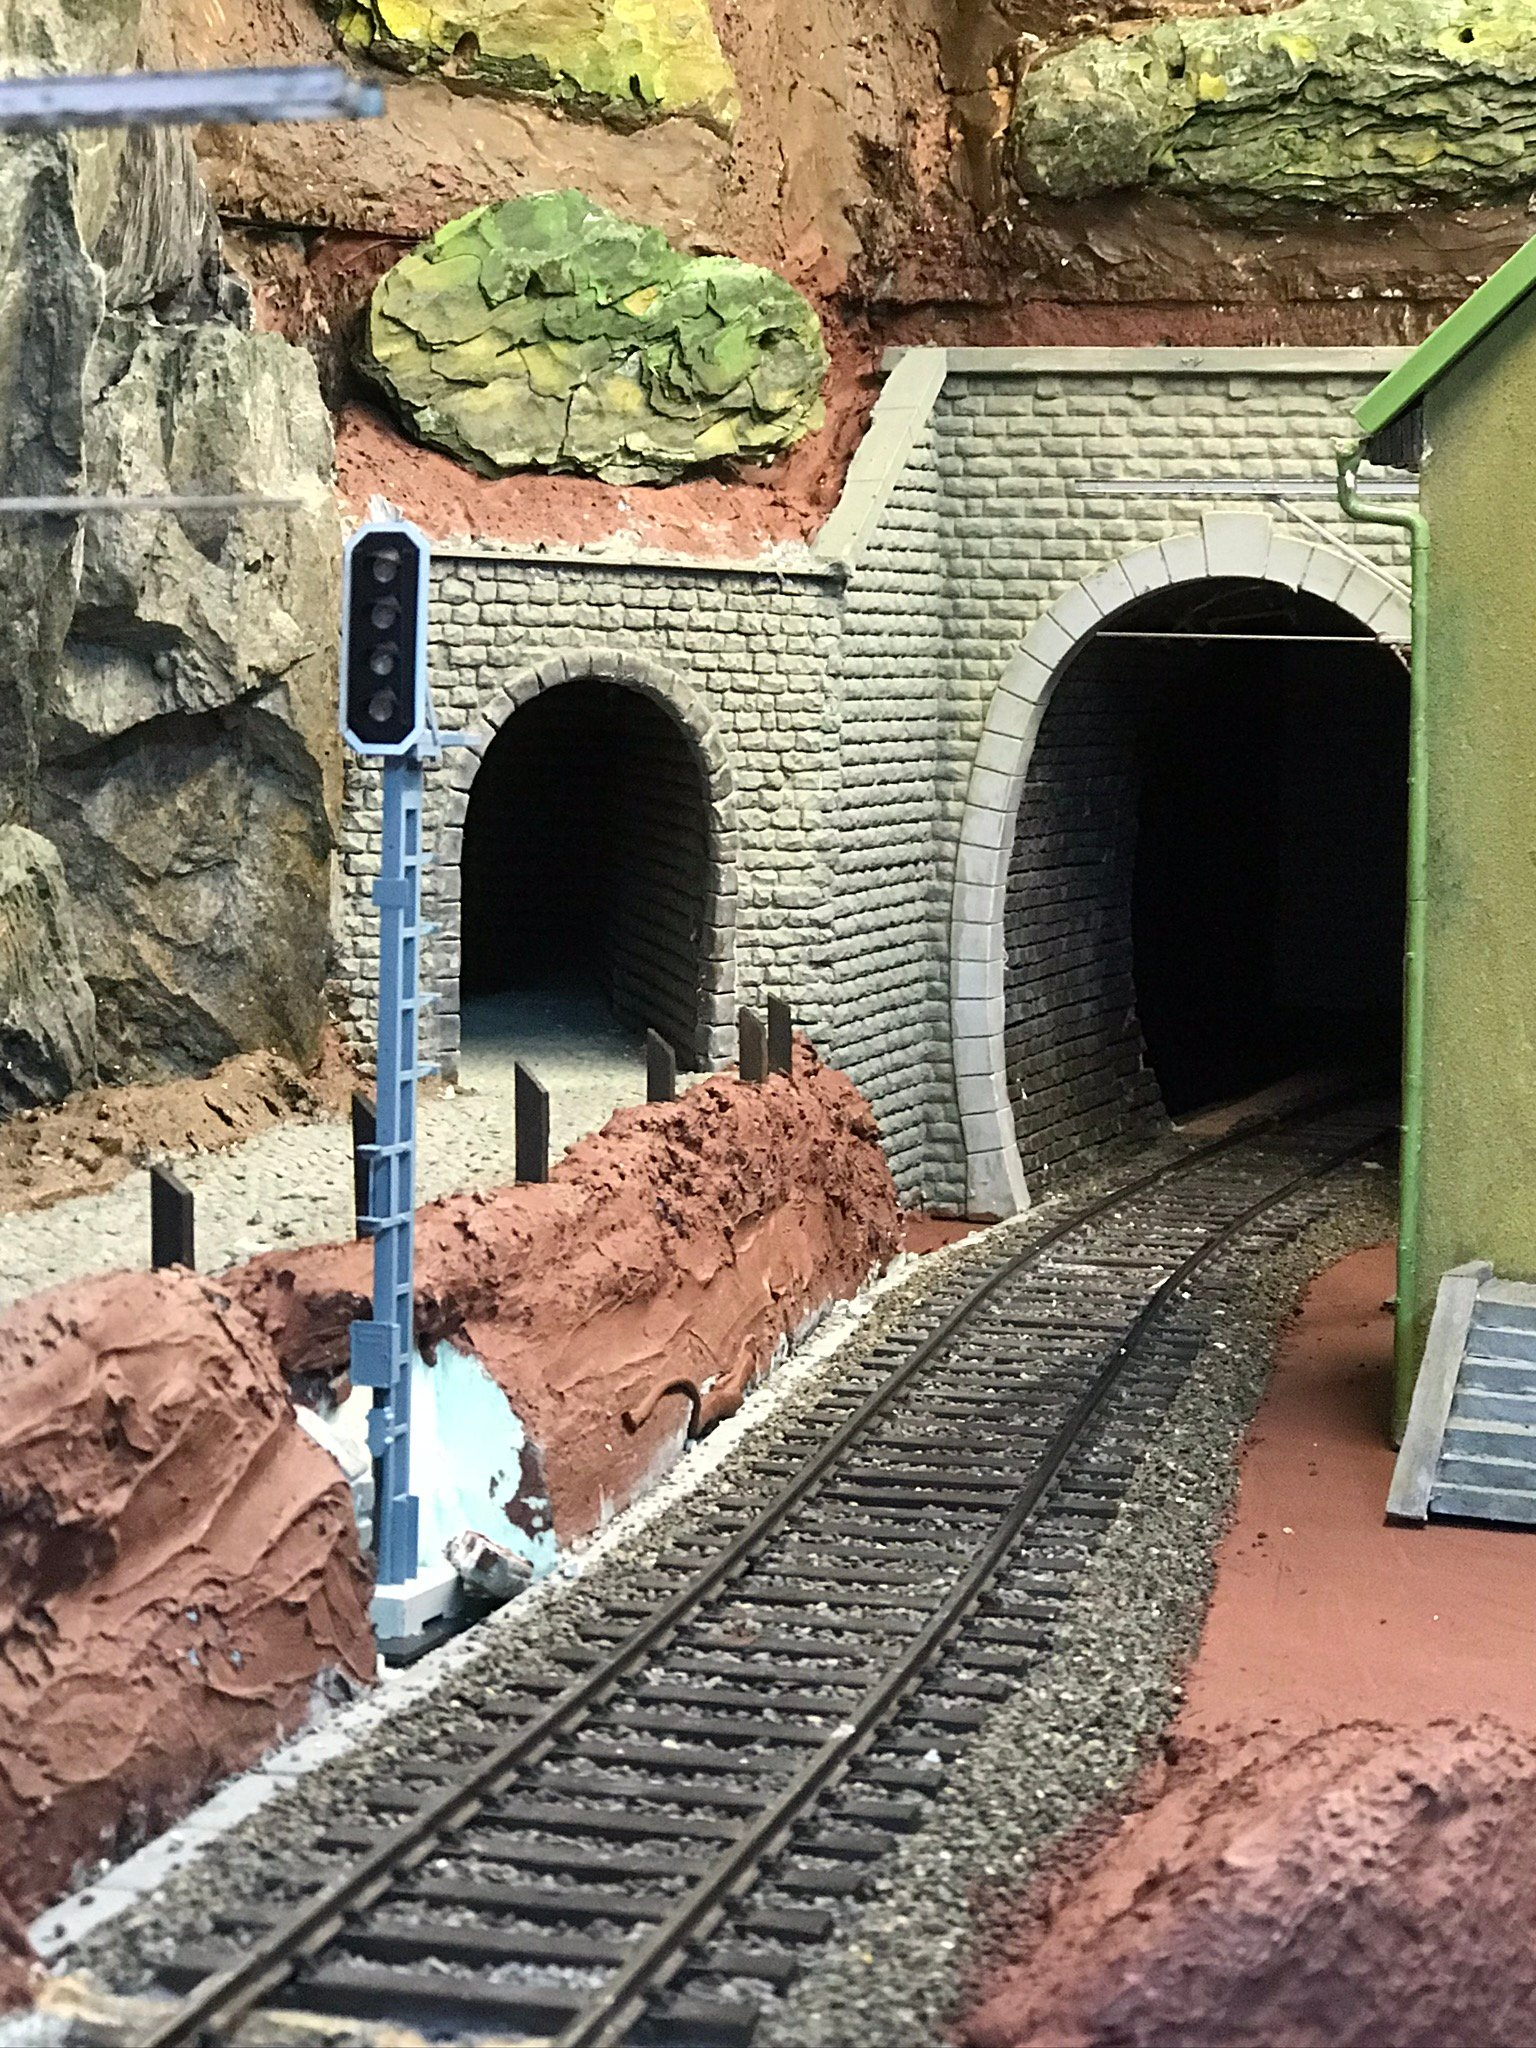 Right side of the layout